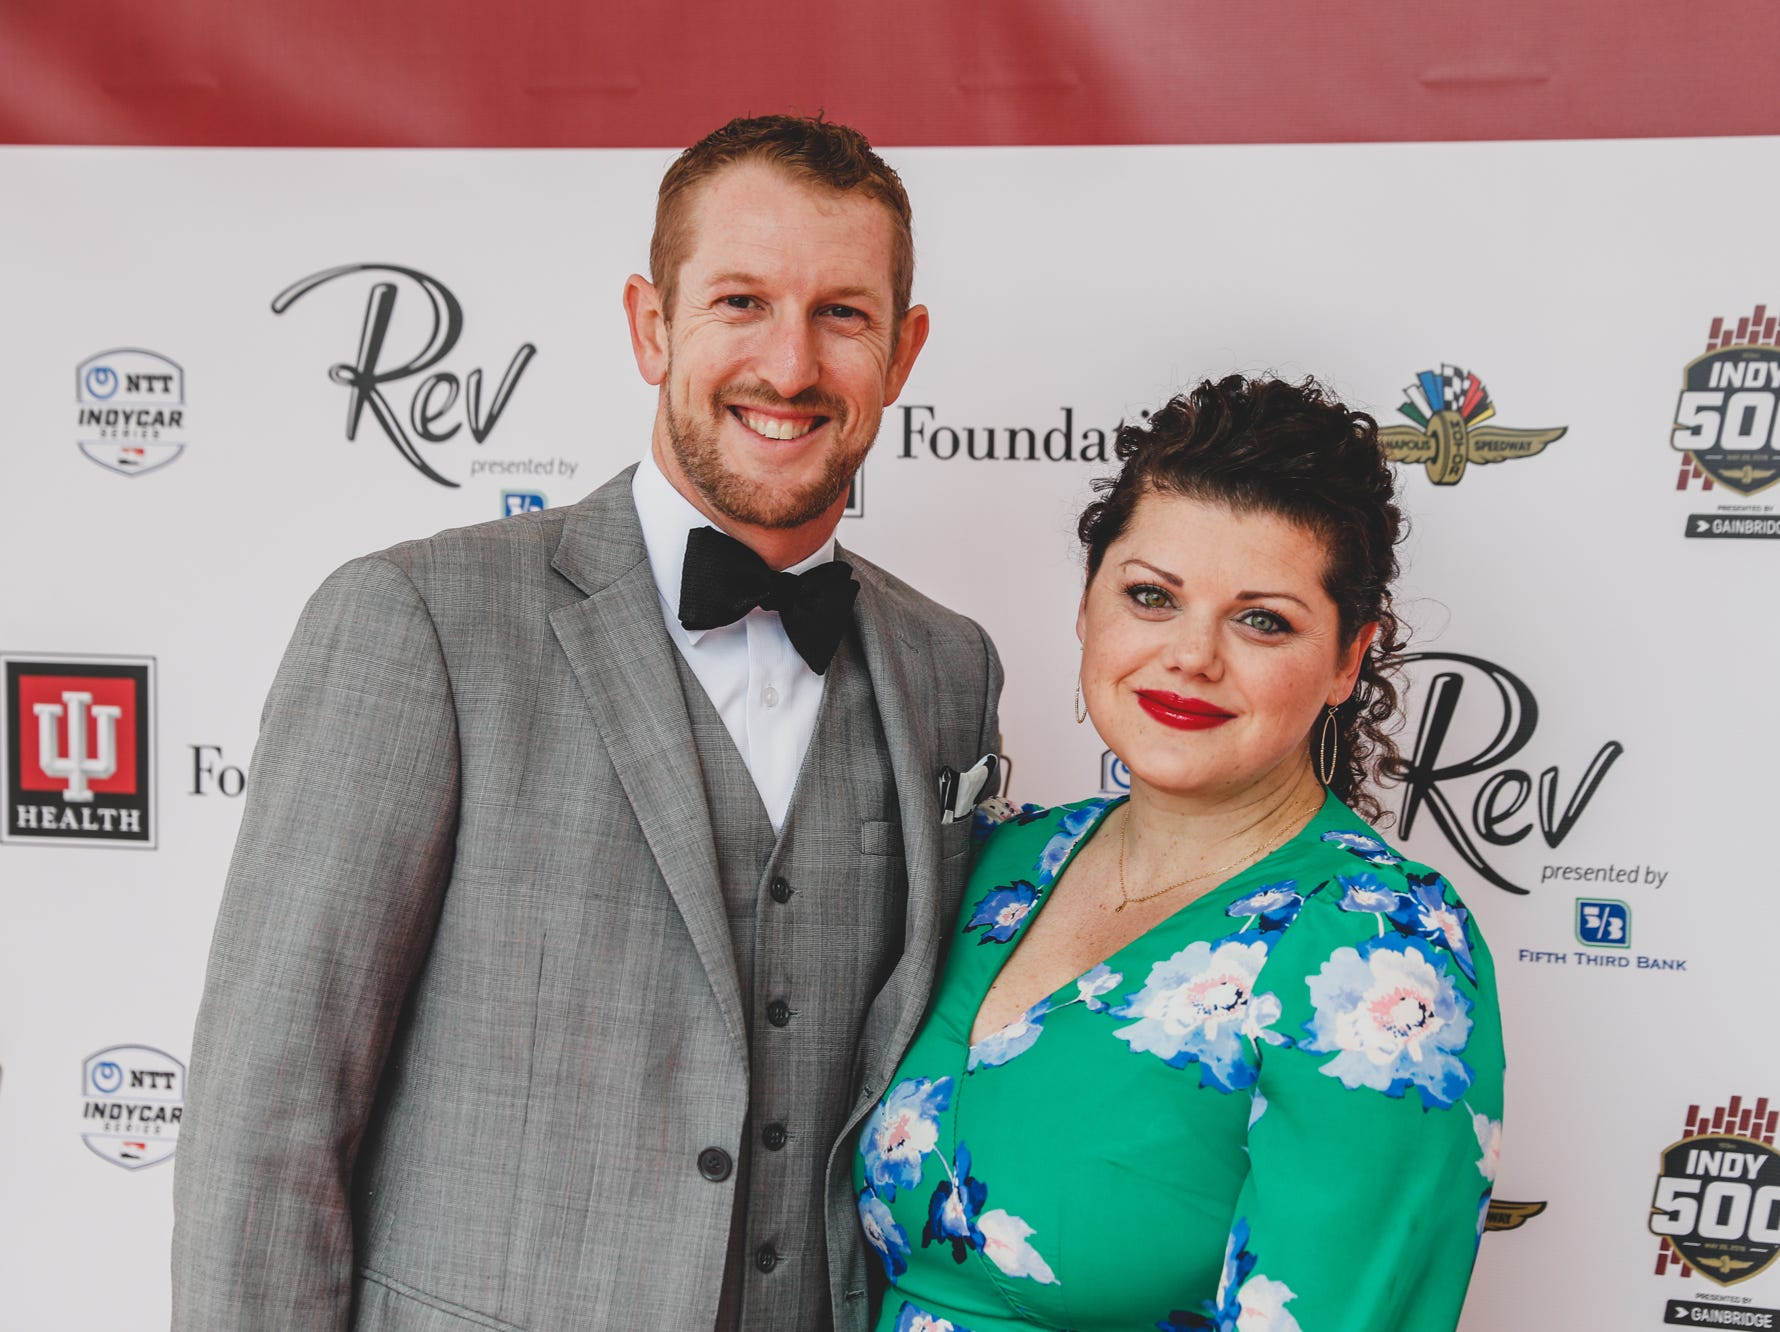 IndyCar Driver Charlie Kimball and wife Kathleen Kimball walk the red carpet at the Rev Indy fundraiser, held at the Indianapolis Motor Speedway on Saturday, May 4, 2019. Funds raised support the IU Health Foundation statewide and the IU Health Emergency Medical Center at IMS.